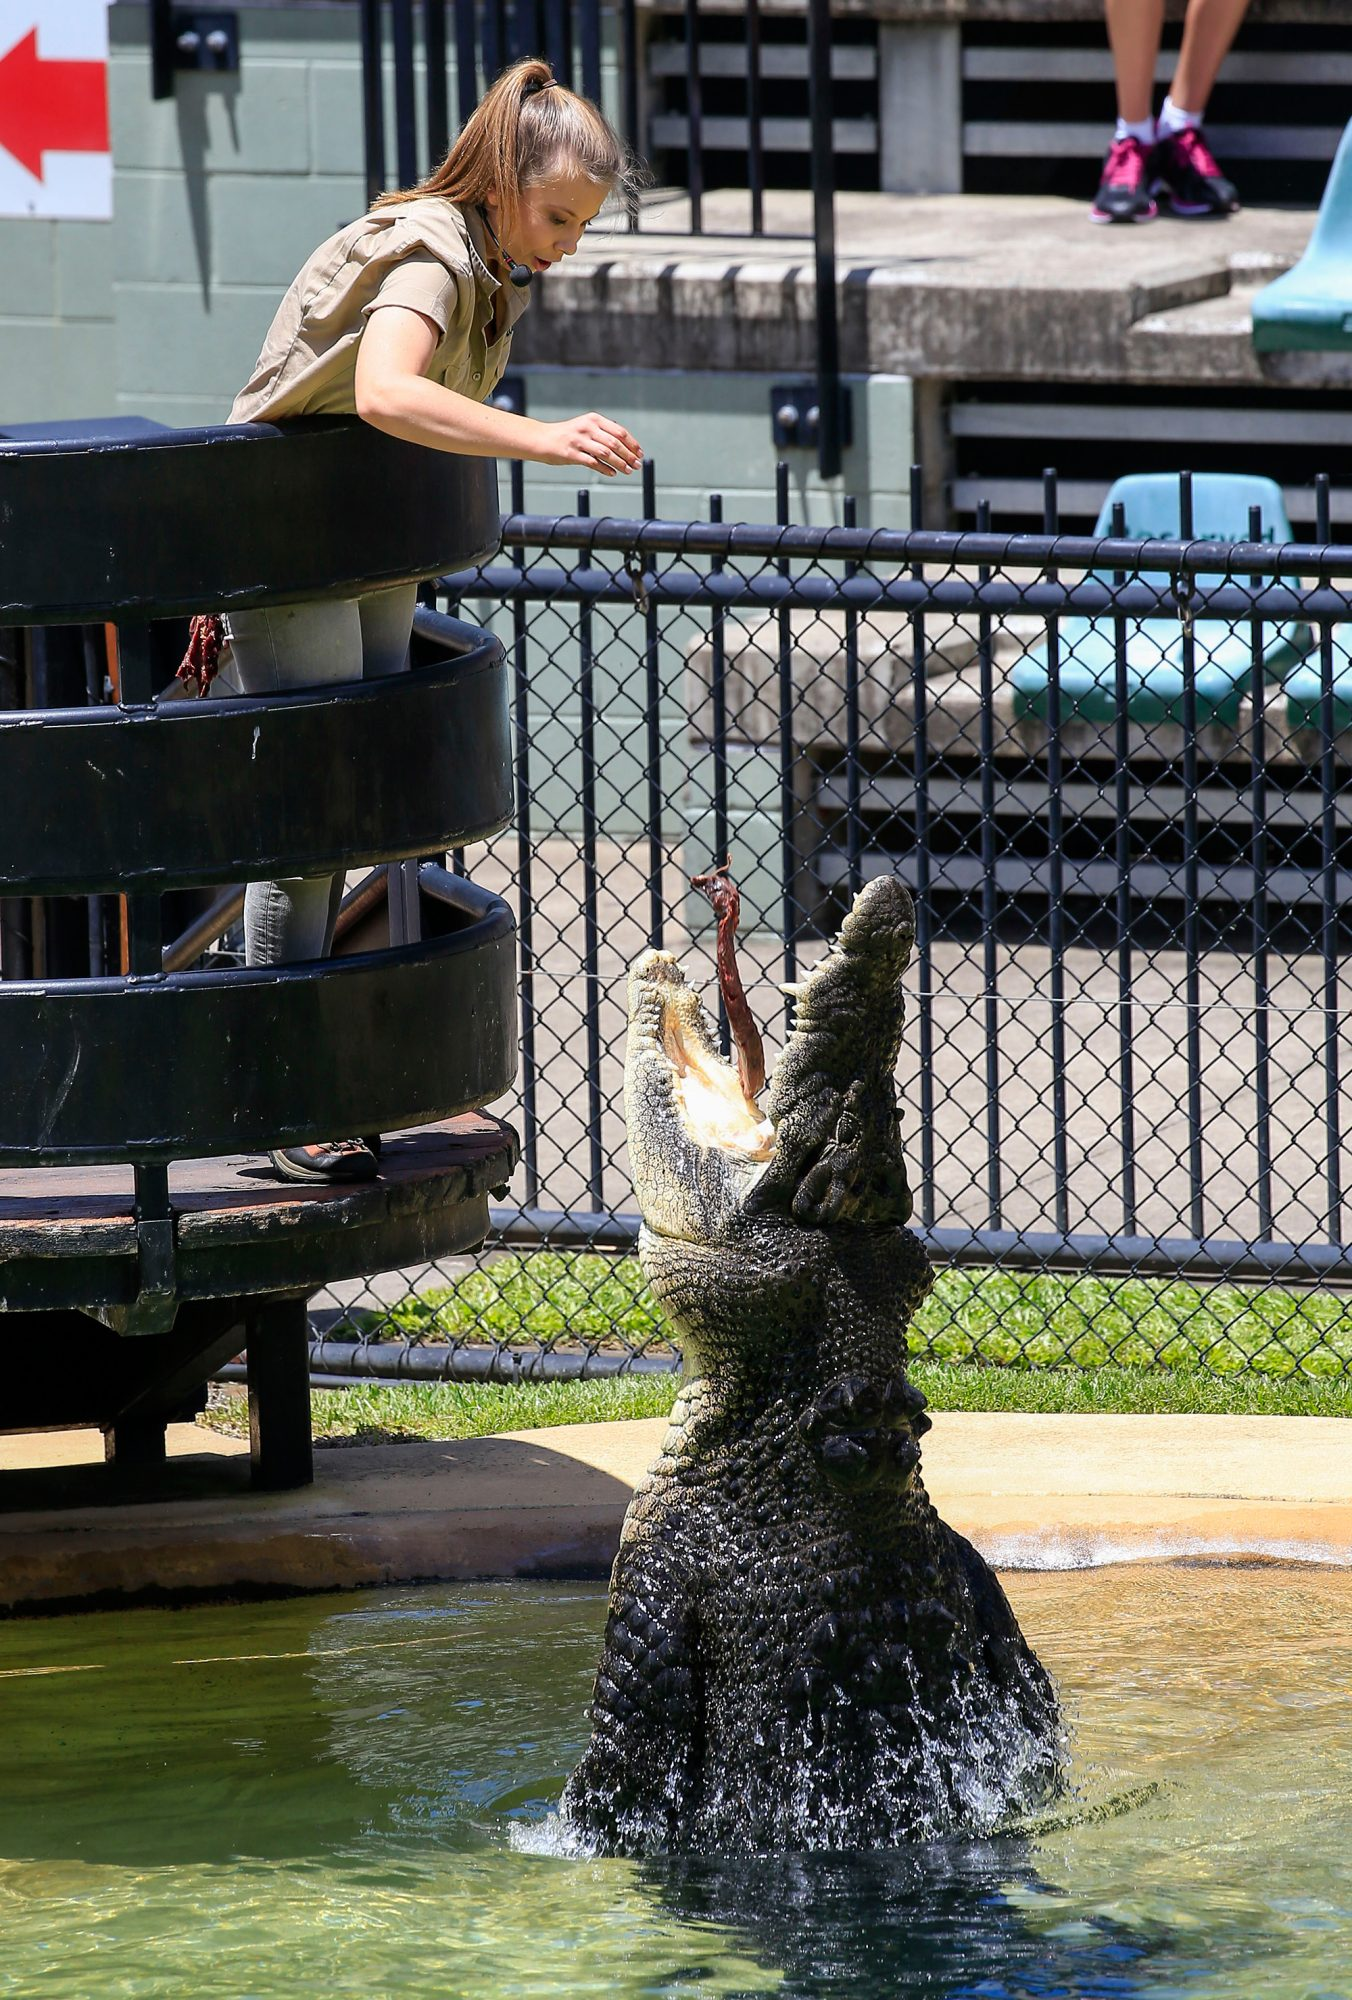 Bindi and Robert Irwin celebrate in their father's memory on Steve Irwin Day at their home, Australia Zoo on November 15, 2016 in Queensland, Australia. Terri Irwin led the family in a crocodile show, with both Bindi and Robert getting hands on with crocs. Bindi's boyfriend Chandler Powell was on the sidelines helping out too. Pictured: Bindi Irwin Ref: SPL1384483 151116 Picture by: Splash News Splash News and Pictures Los Angeles: 310-821-2666 New York: 212-619-2666 London: 870-934-2666 photodesk@splashnews.com